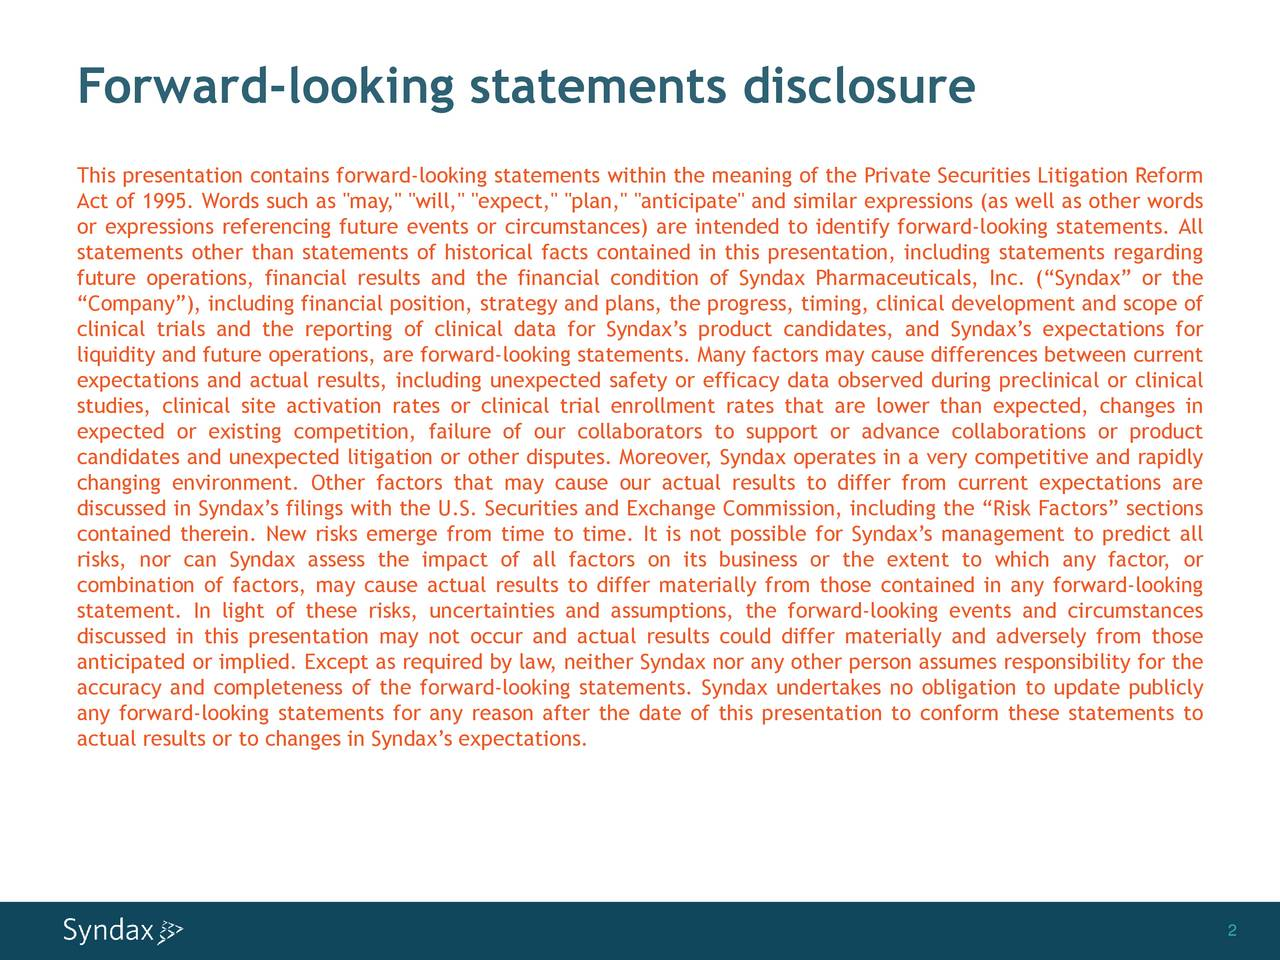 """This presentation contains forward-looking statements within the meaning of the Private Securities Litigation Reform Act of 1995. Words such as """"may,"""" """"will,"""" """"expect,"""" """"plan,"""" """"anticipate"""" and similar expressions (as well as other words or expressions referencing future events or circumstances) are intended to identify forward-looking statements. All statements other than statements of historical facts contained in this presentation, including statements regarding future operations, financial results and the financial condition of Syndax Pharmaceuticals, Inc. (Syndax or the Company), including financial position, strategy and plans, the progress, timing, clinical development and scope of clinical trials and the reporting of clinical data for Syndaxs product candidates, and Syndaxs expectations for liquidity and future operations, are forward-looking statements. Many factors may cause differences between current expectations and actual results, including unexpected safety or efficacy data observed during preclinical or clinical studies, clinical site activation rates or clinical trial enrollment rates that are lower than expected, changes in expected or existing competition, failure of our collaborators to support or advance collaborations or product candidates and unexpected litigation or other disputes. Moreover, Syndax operates in a very competitive and rapidly changing environment. Other factors that may cause our actual results to differ from current expectations are discussed in Syndaxs filings with the U.S. Securities and Exchange Commission, including the Risk Factors sections contained therein. New risks emerge from time to time. It is not possible for Syndaxs management to predict all risks, nor can Syndax assess the impact of all factors on its business or the extent to which any factor, or combination of factors, may cause actual results to differ materially from those contained in any forward-looking statement. In light of these risks, uncertainties and"""